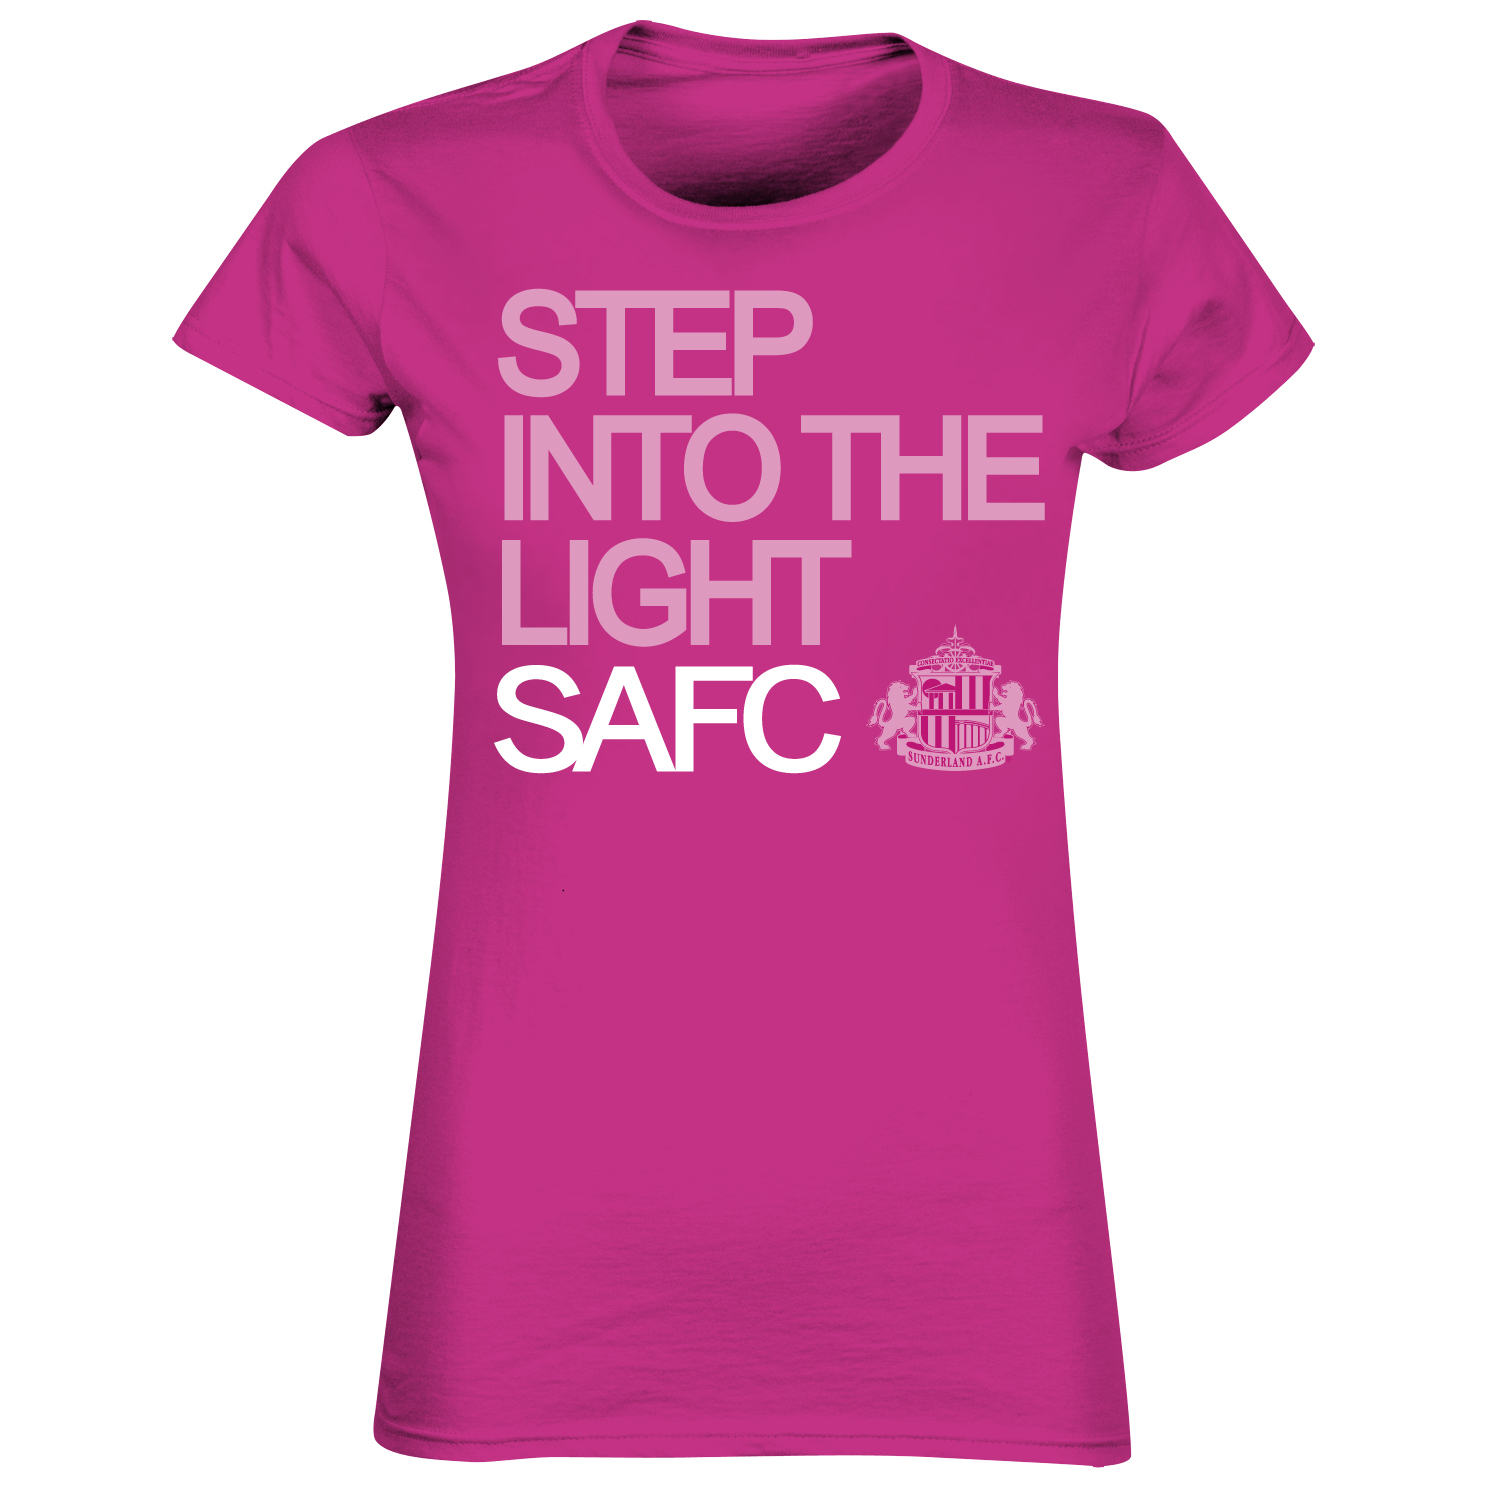 Sunderland 2for?20 Step T-Shirt Pink - Womens